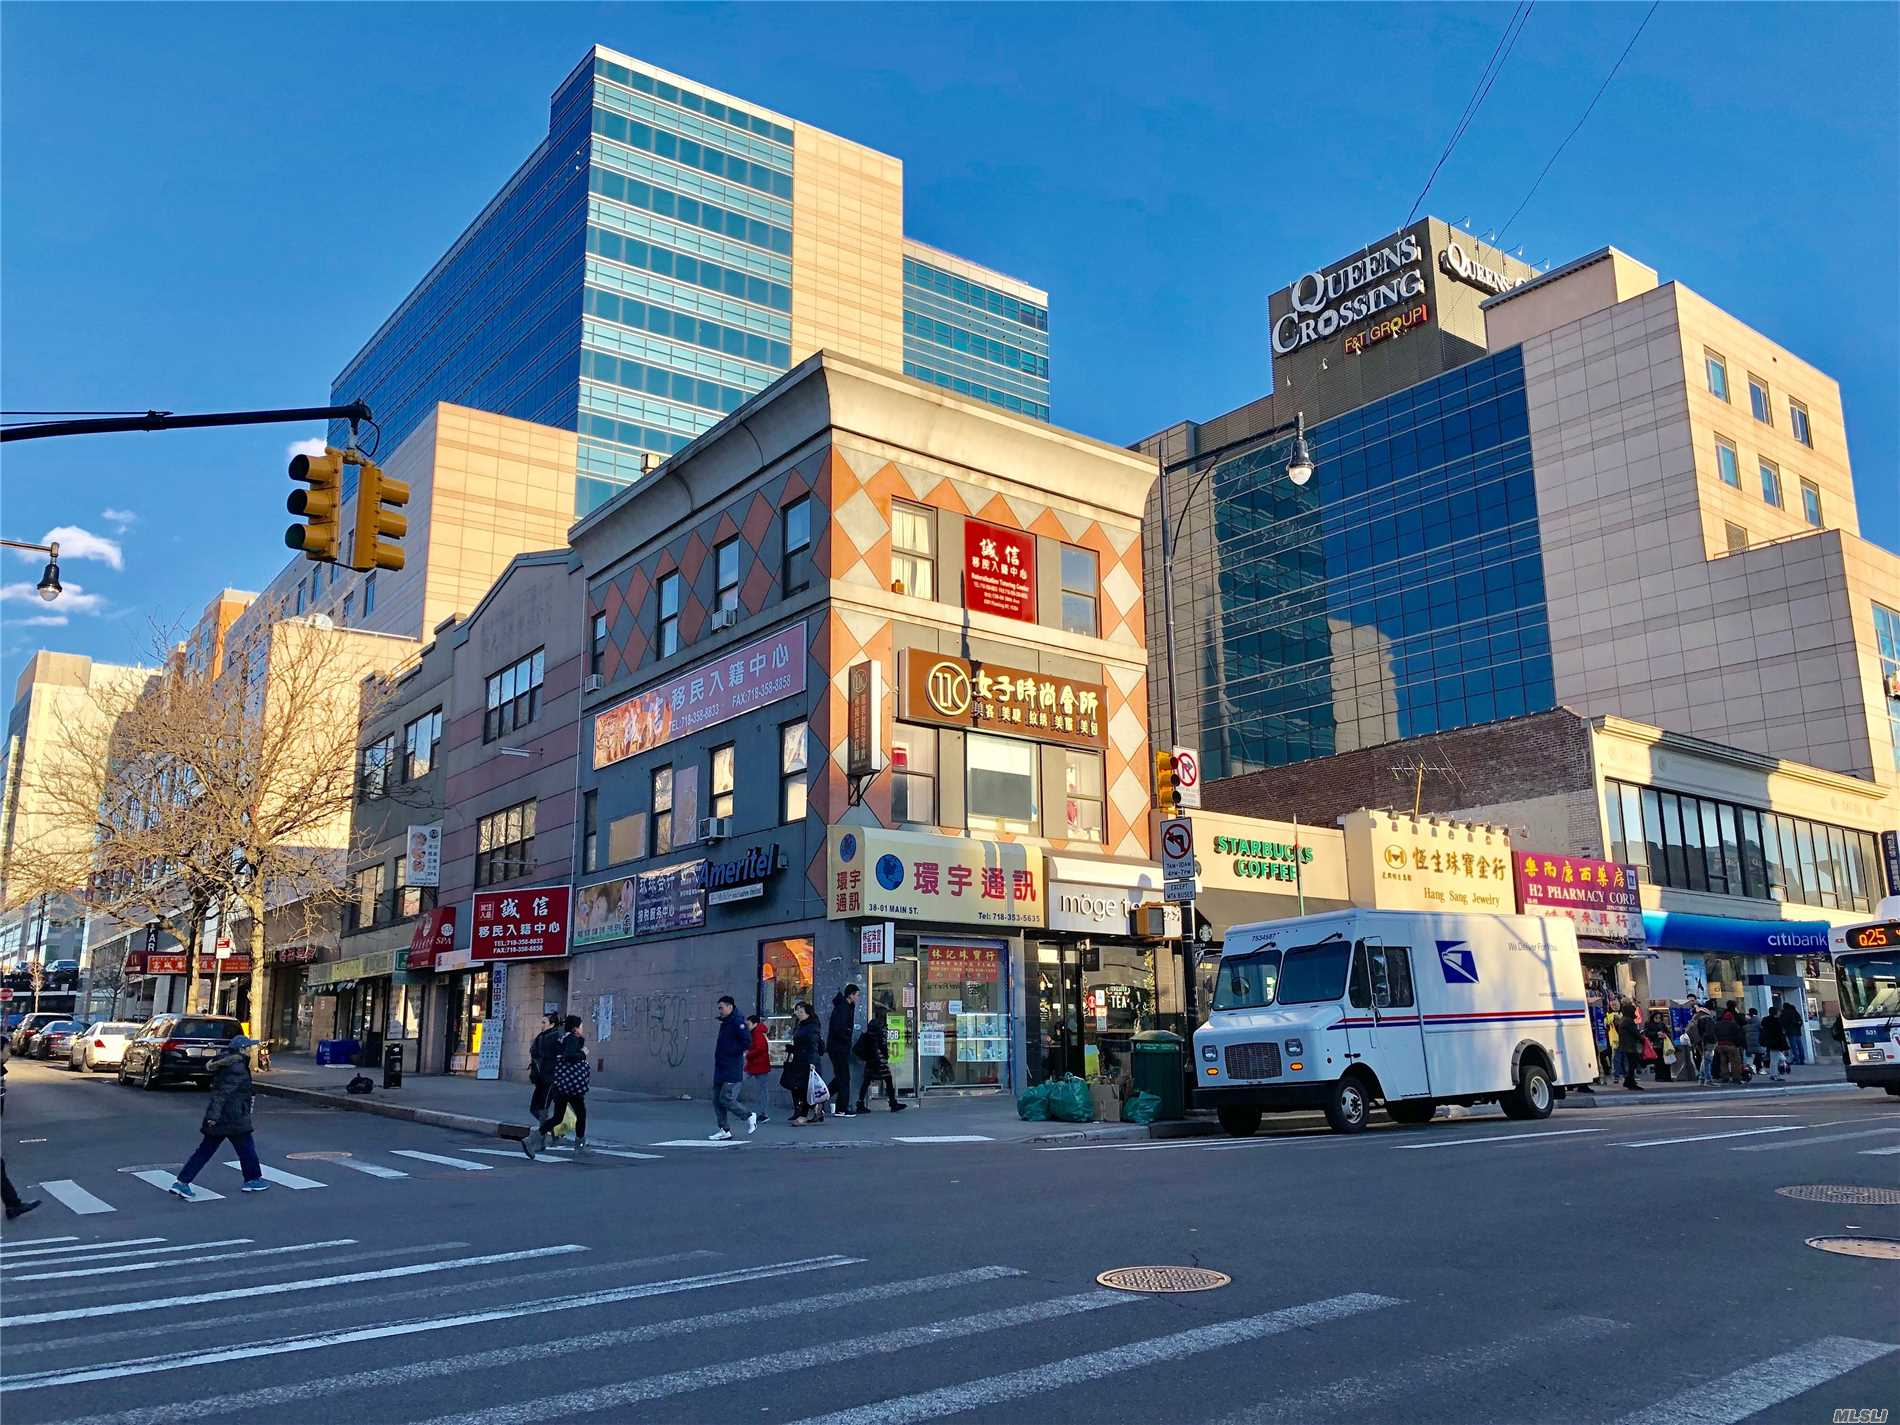 Excellent Location! Right On Main St And 38 Ave, Two Short Blocks For #7 Train Station. Office Space Around 450 Sq For For Rent , Including All Utilities Except Internet. Must See!